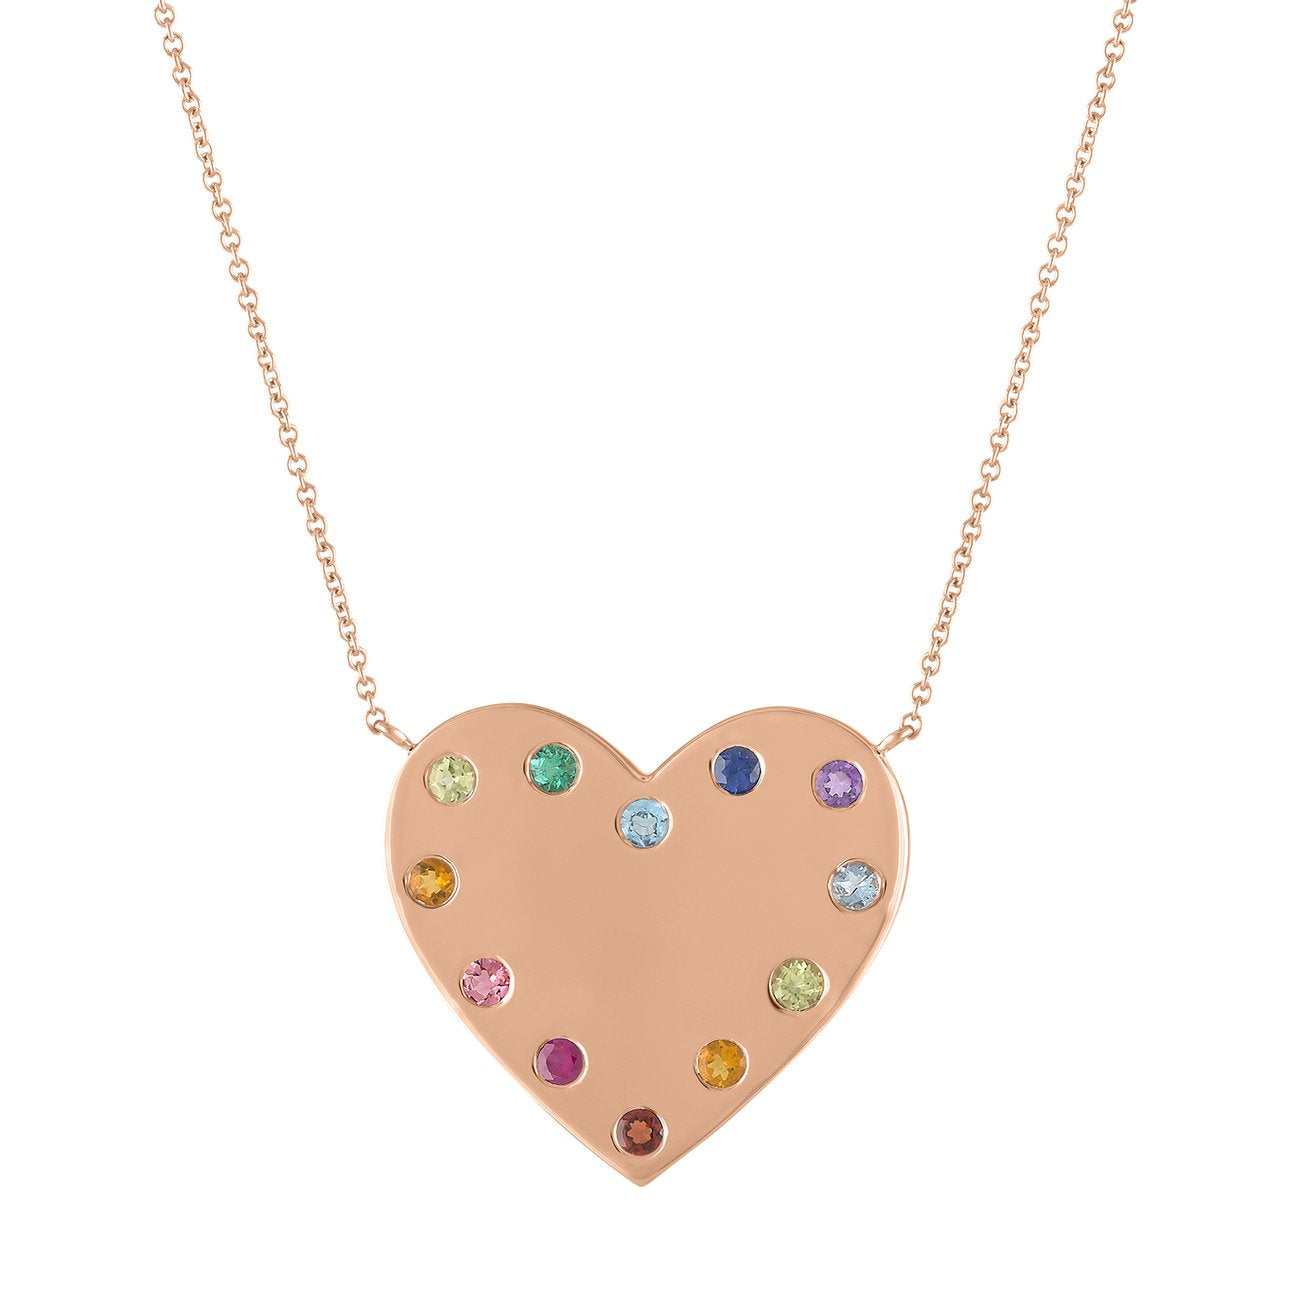 Mimi Rainbow Initial Heart Necklace